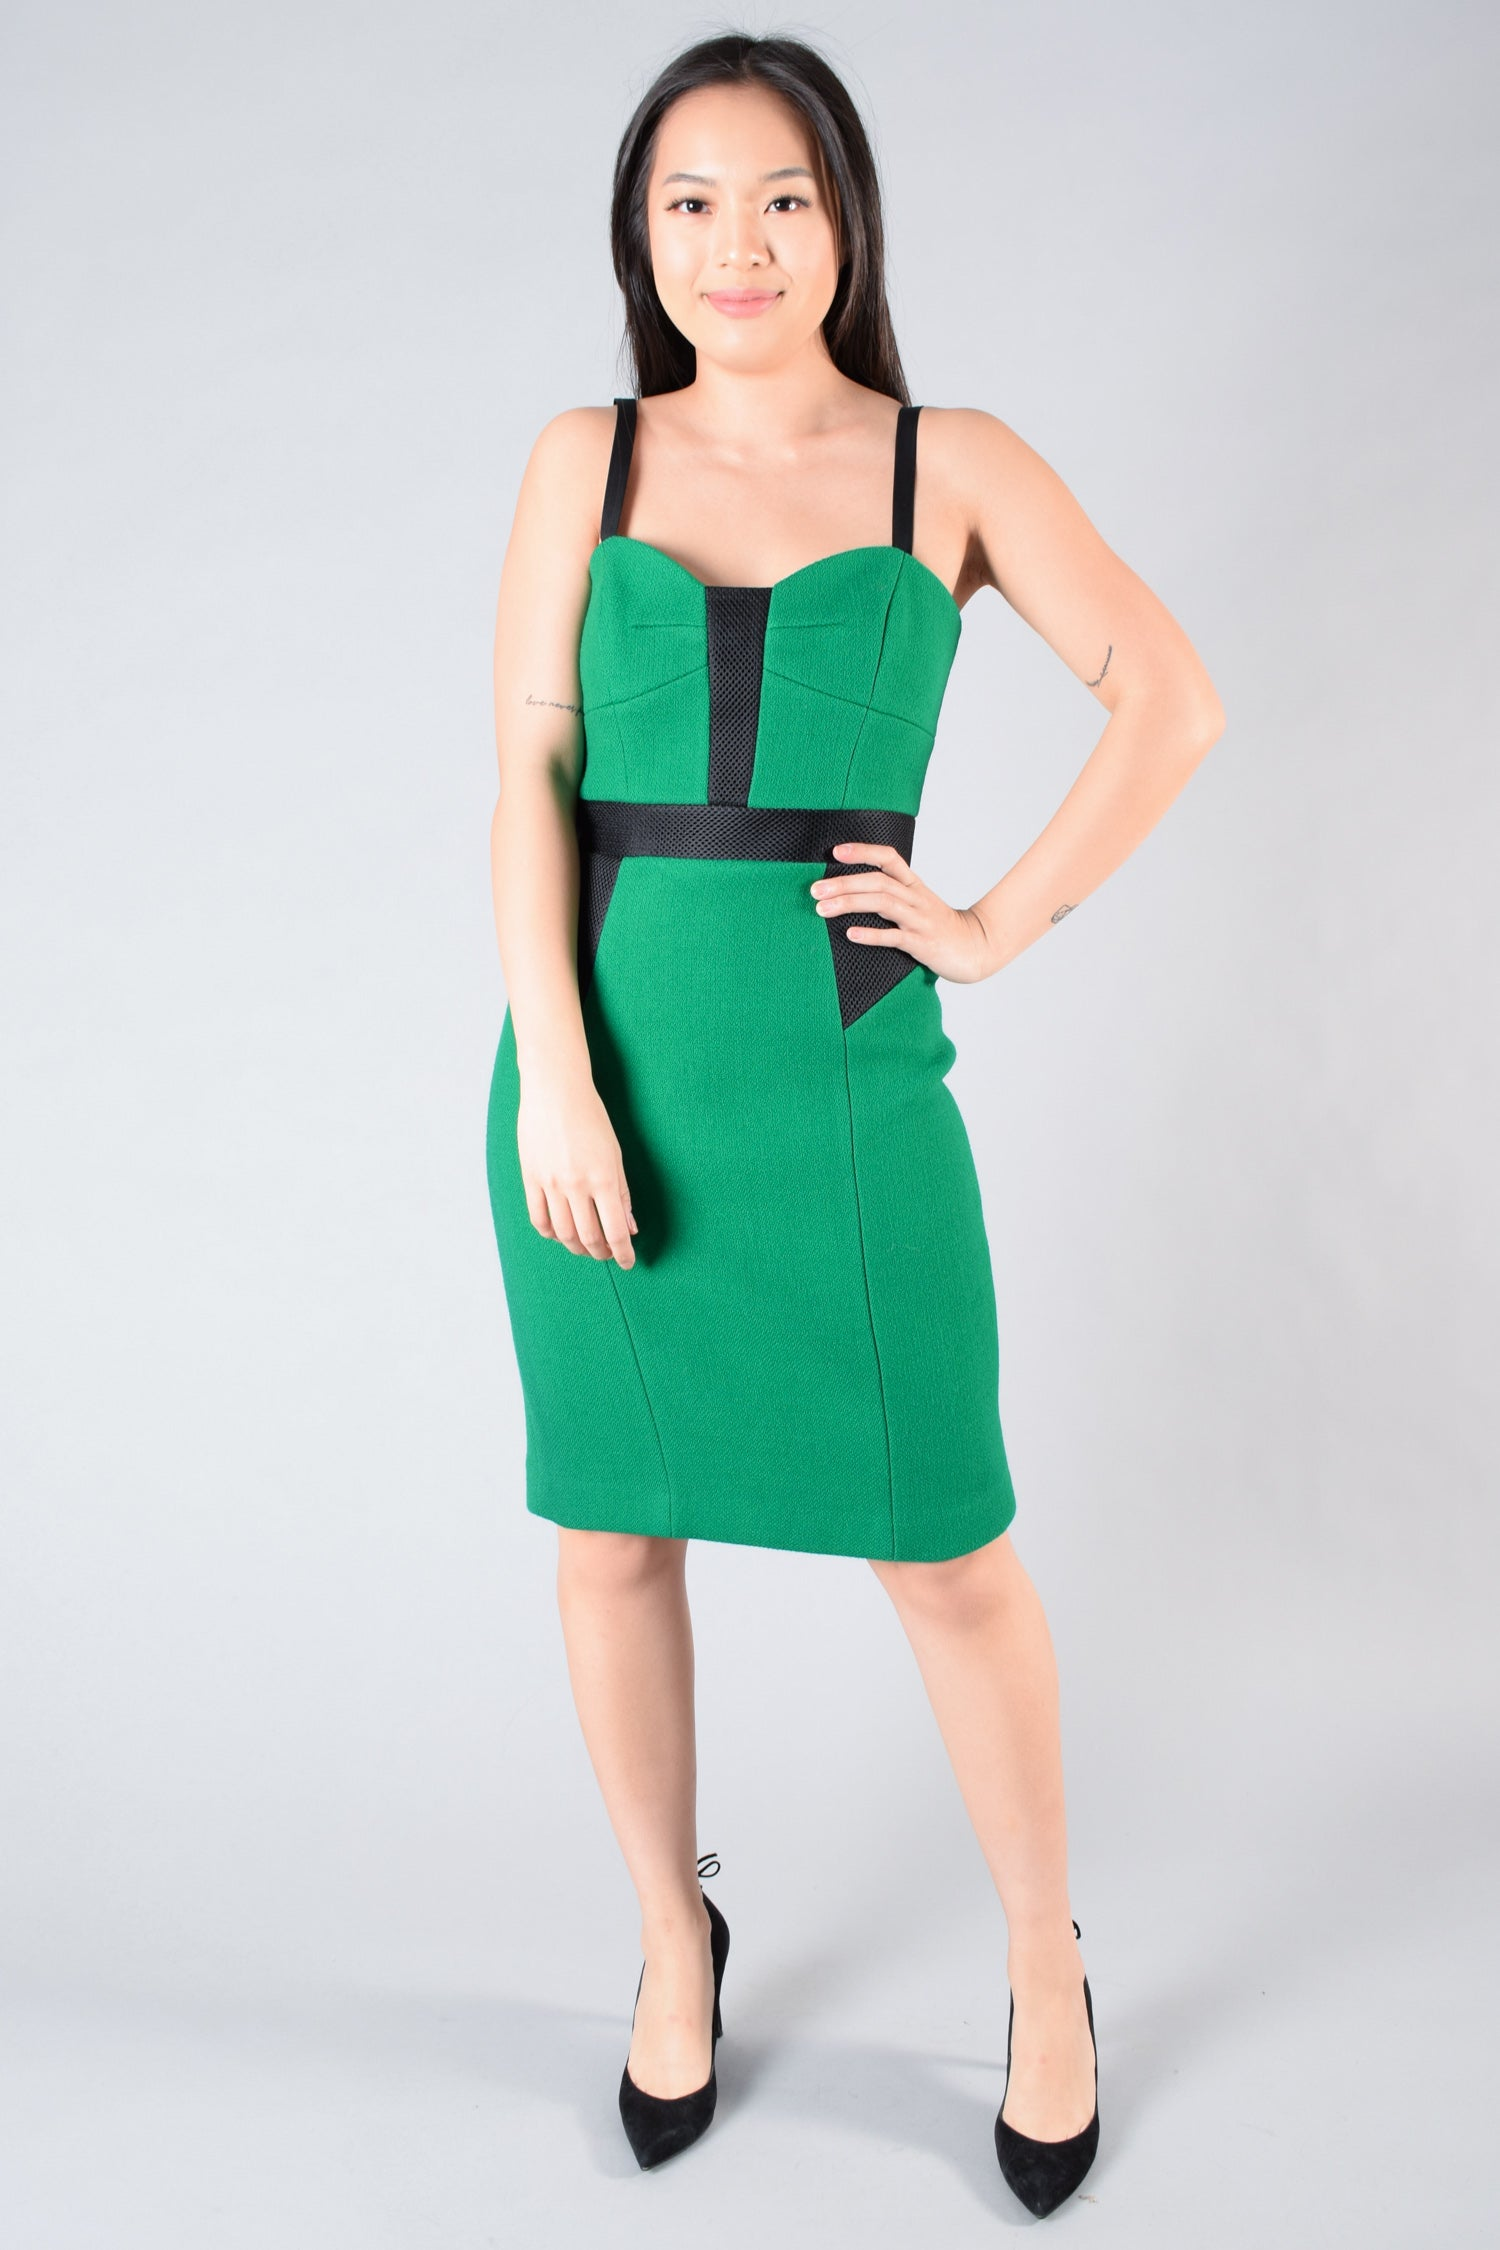 Milly Green/Black Structured Wool Dress Size 4